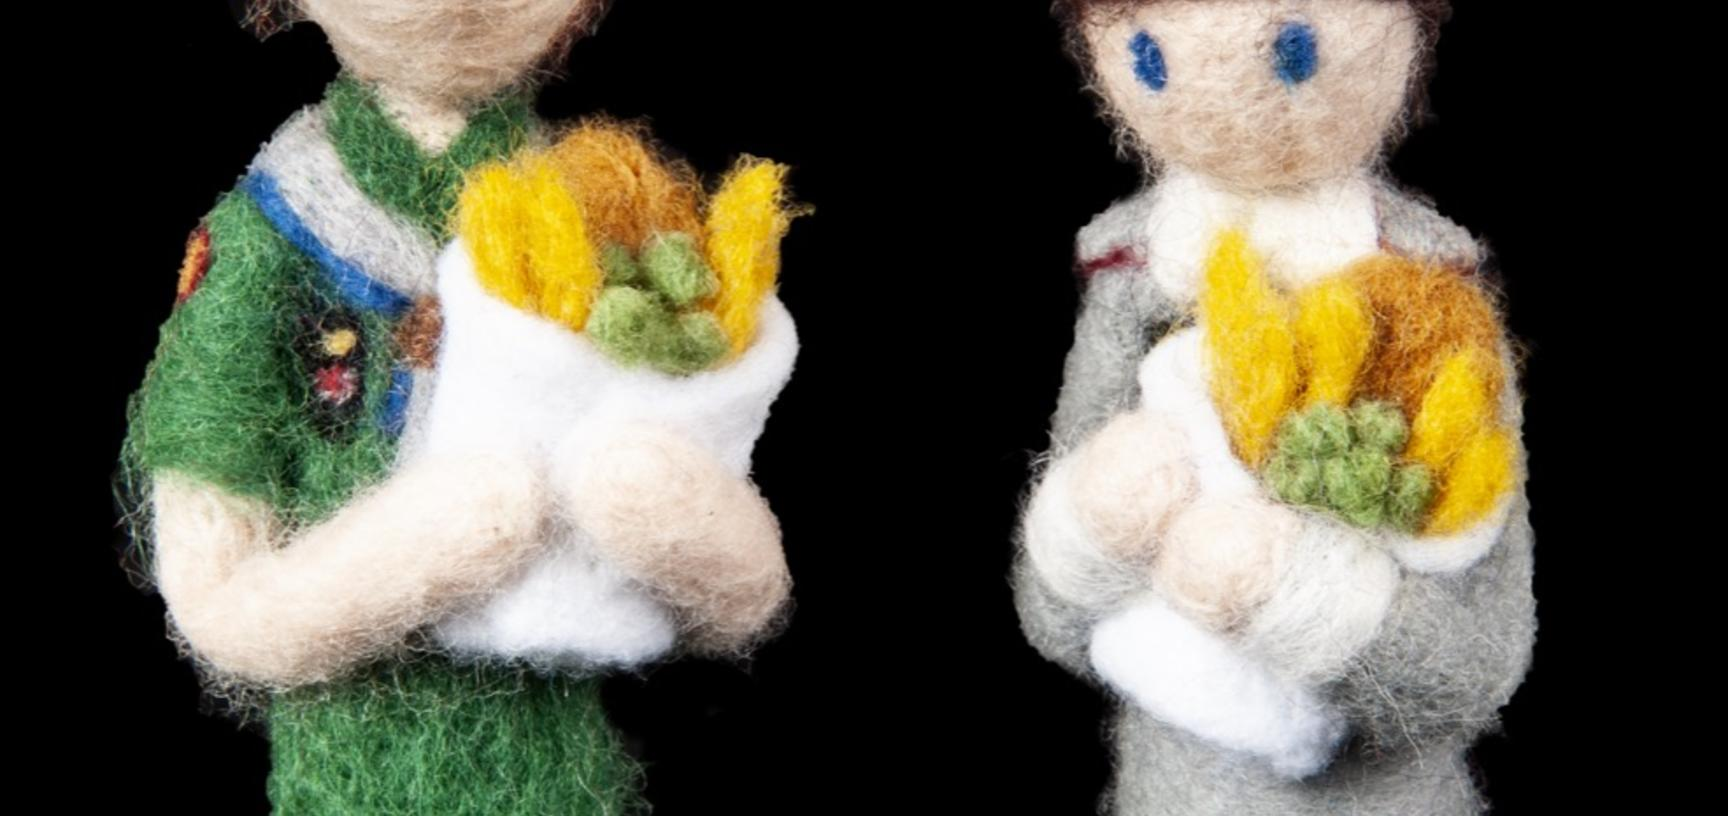 Two felted figures dressed in midwife uniforms and holding felted fish and chips.